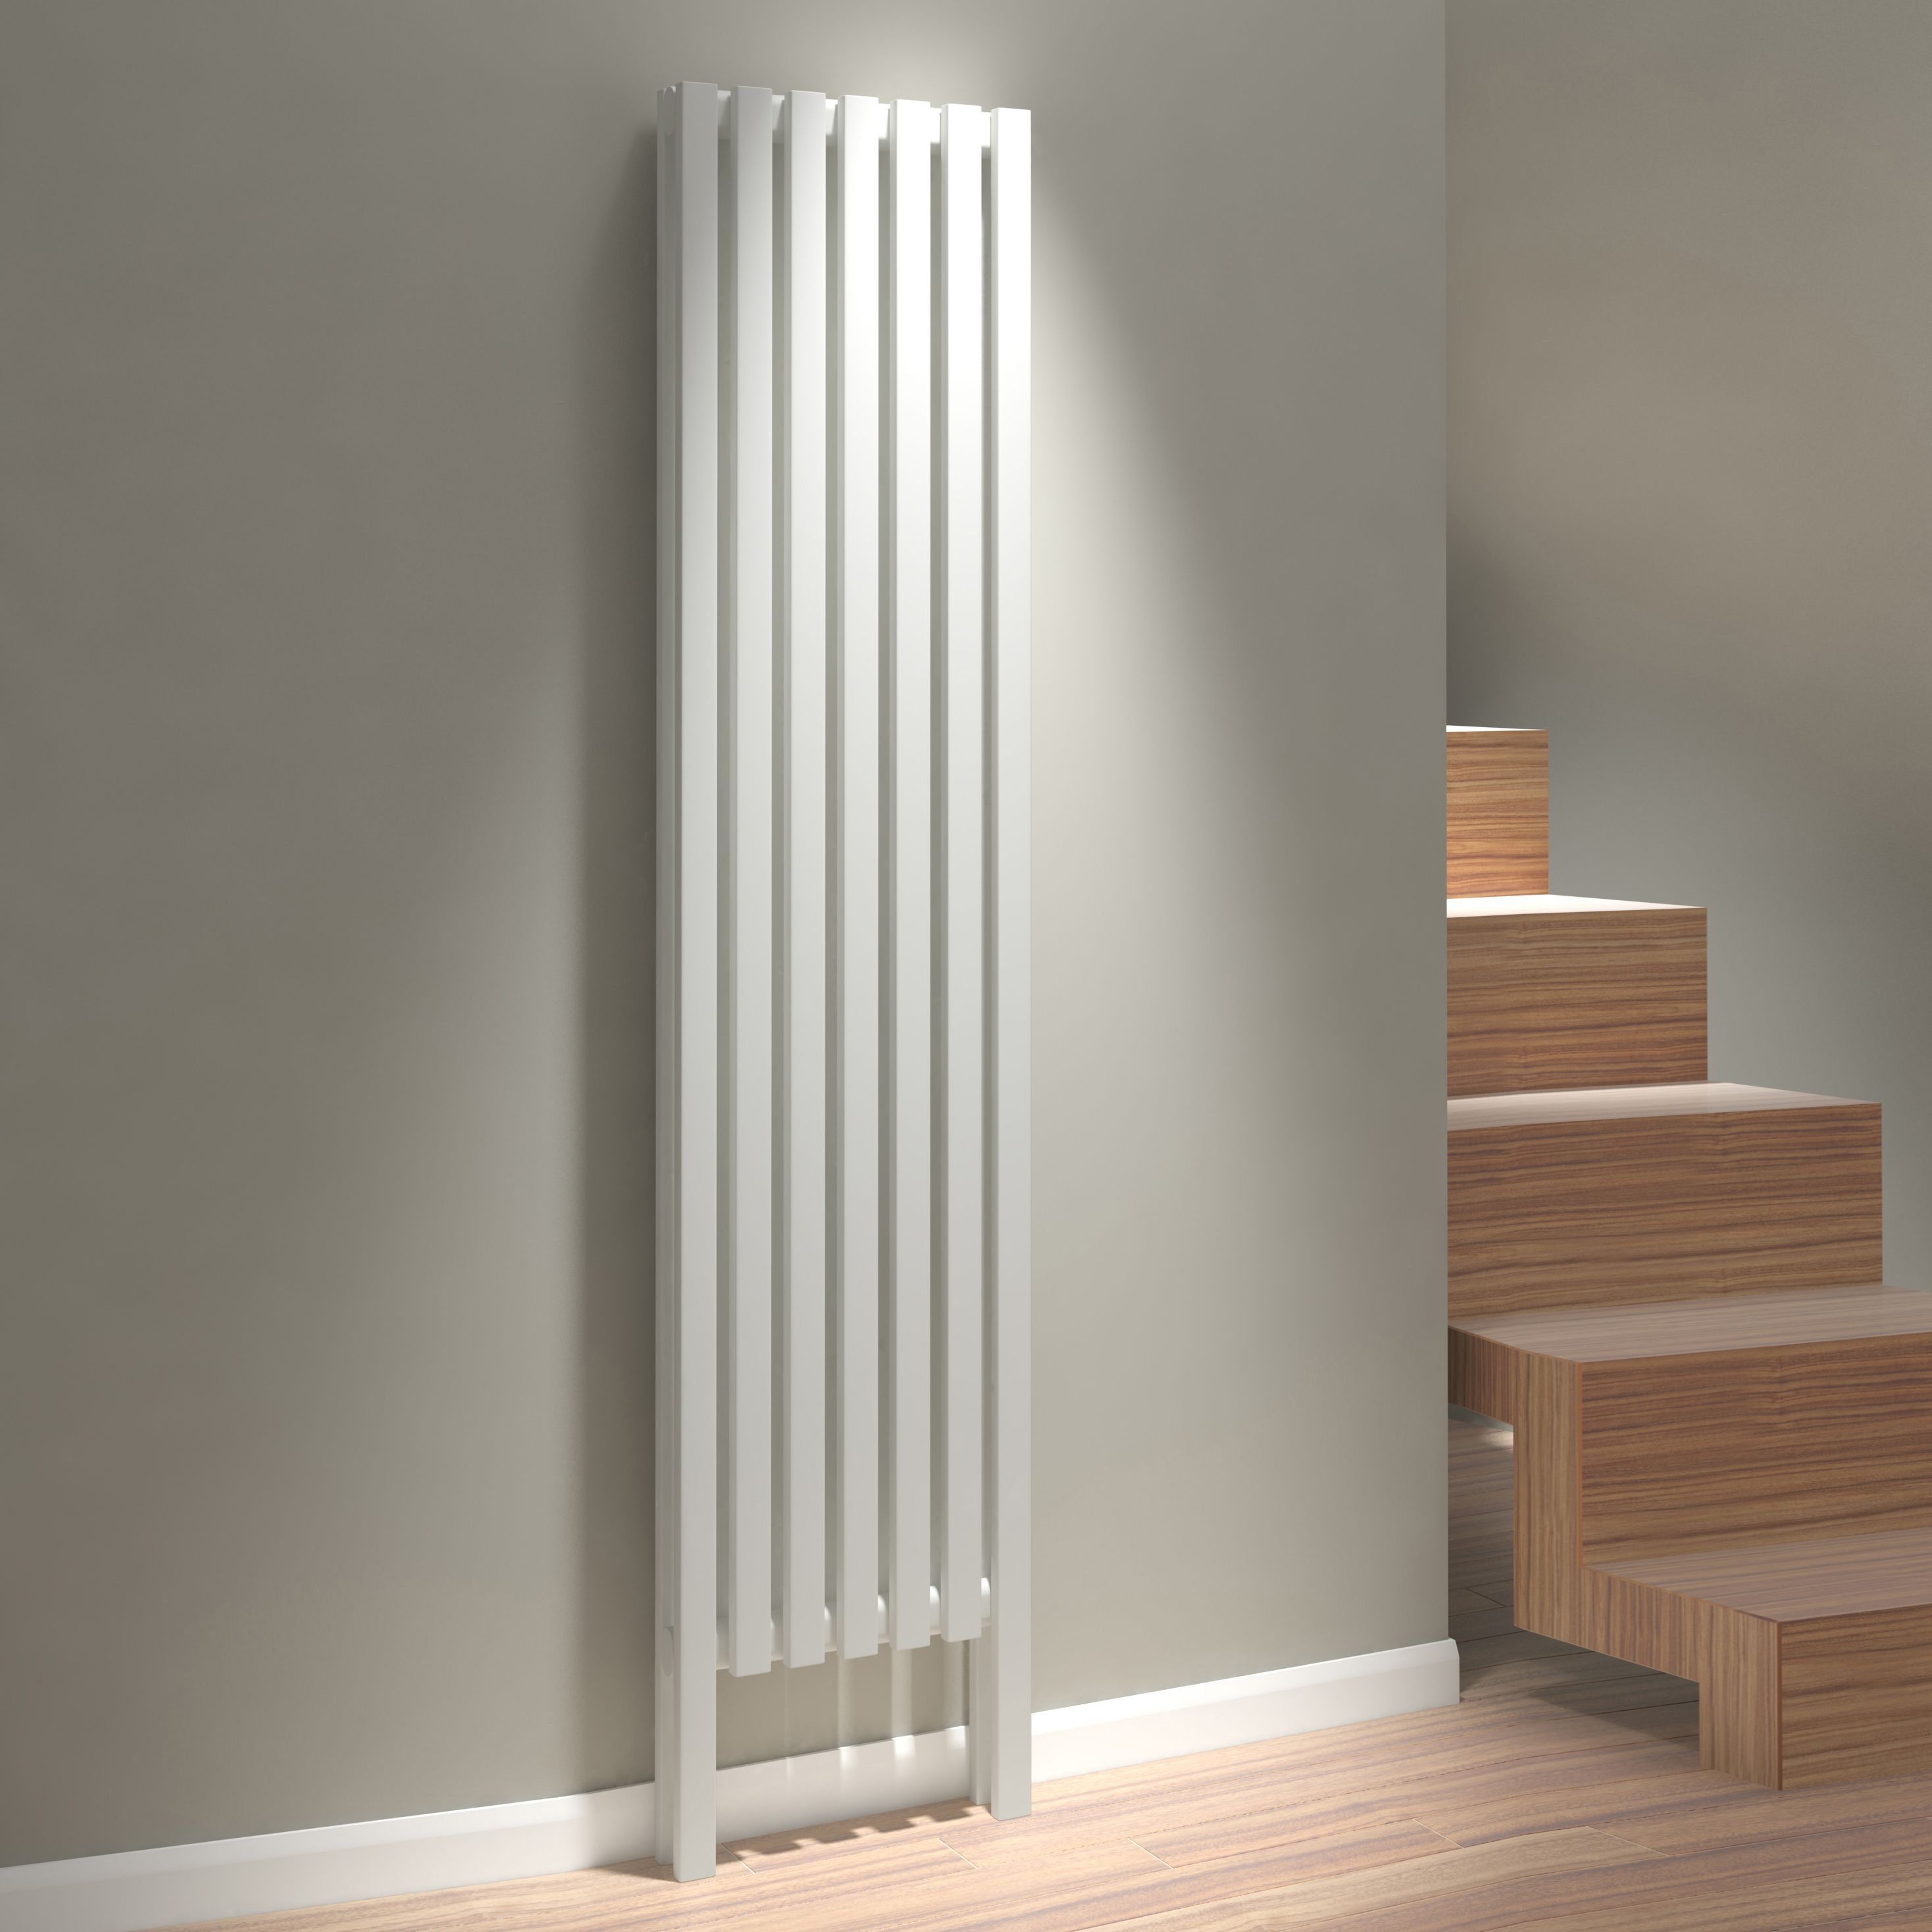 Kudox Axim Vertical Radiator White H 1800 Mm W 400 Mm